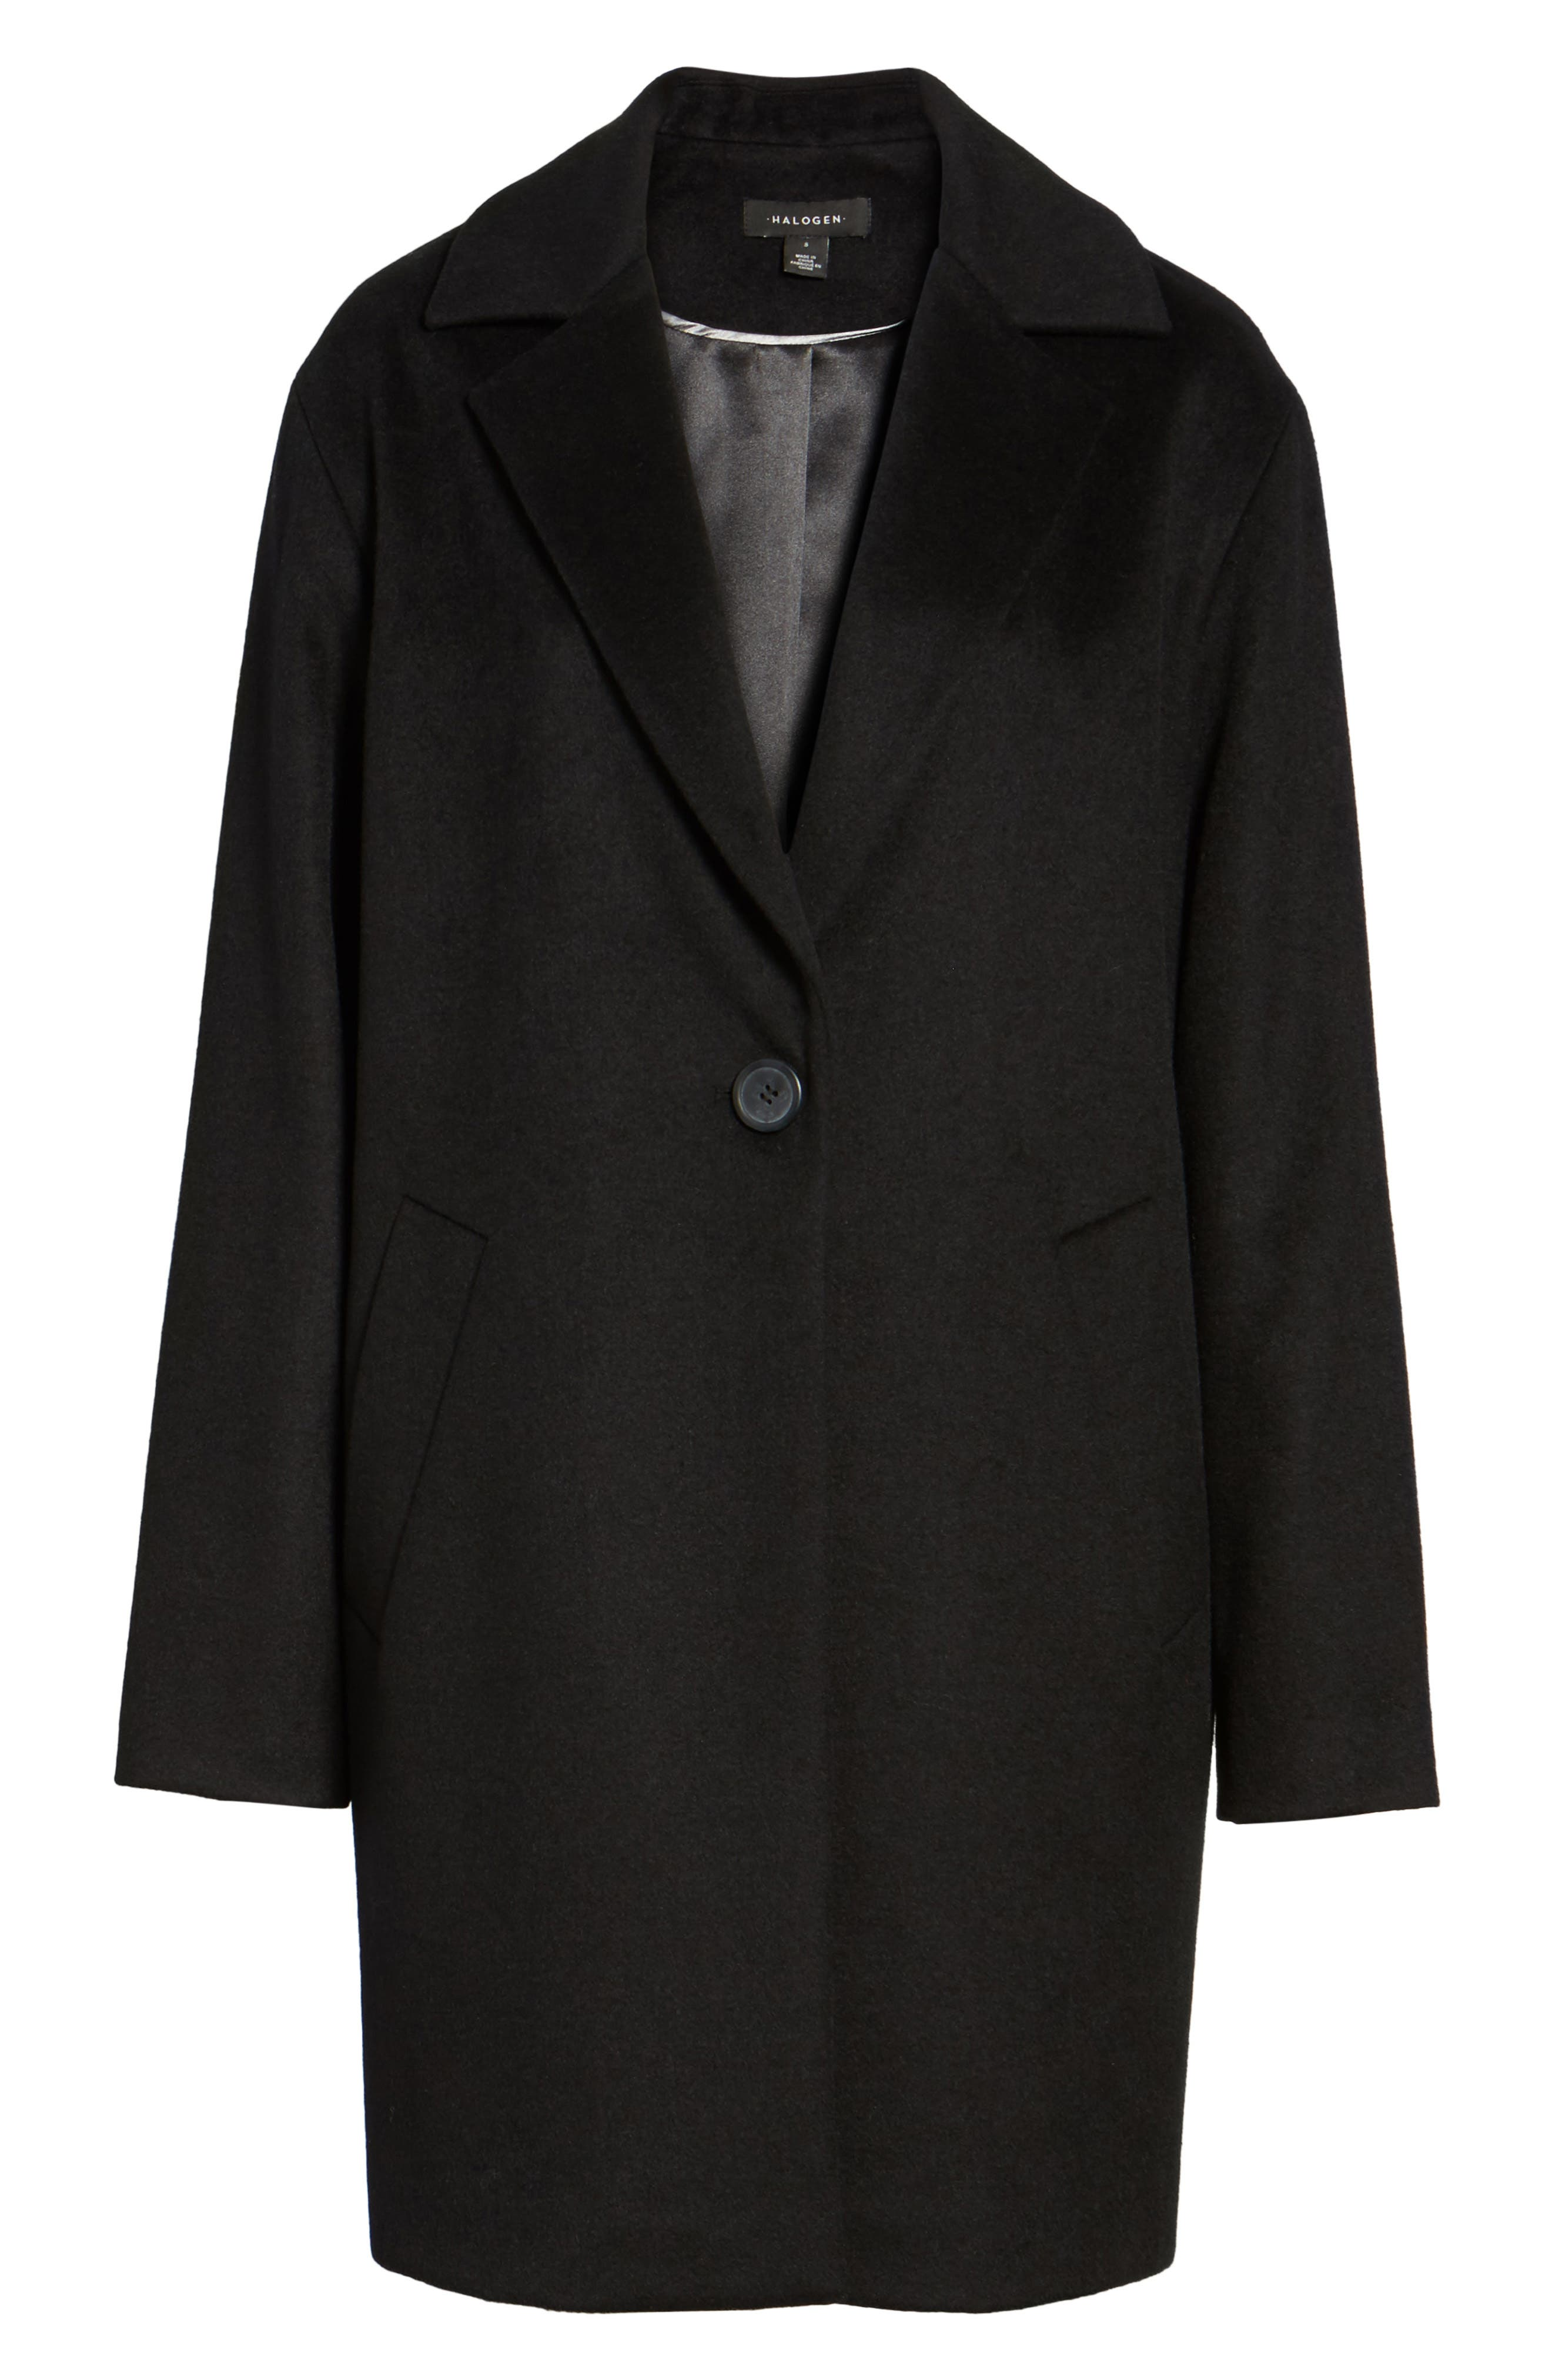 Wool Blend Coat,                             Alternate thumbnail 5, color,                             001